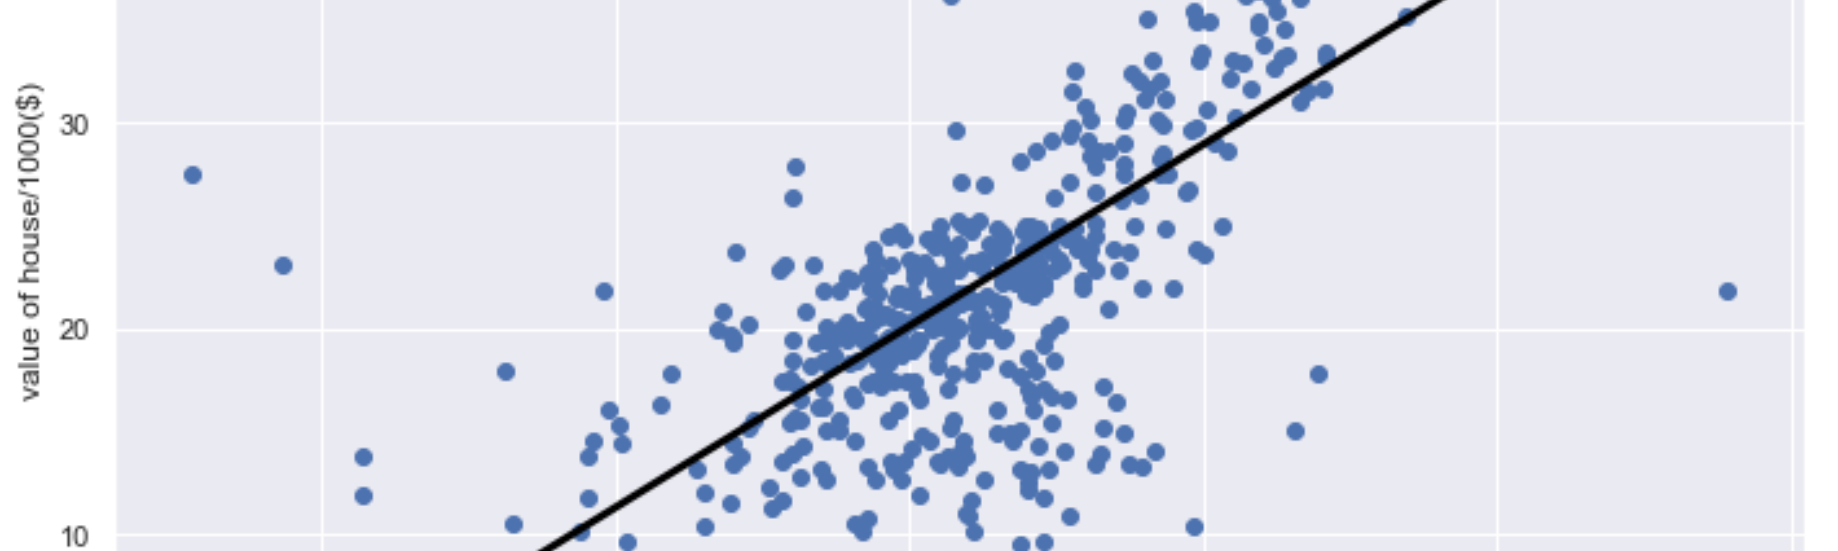 Sklearn Linear Regression Tutorial With Boston House Dataset